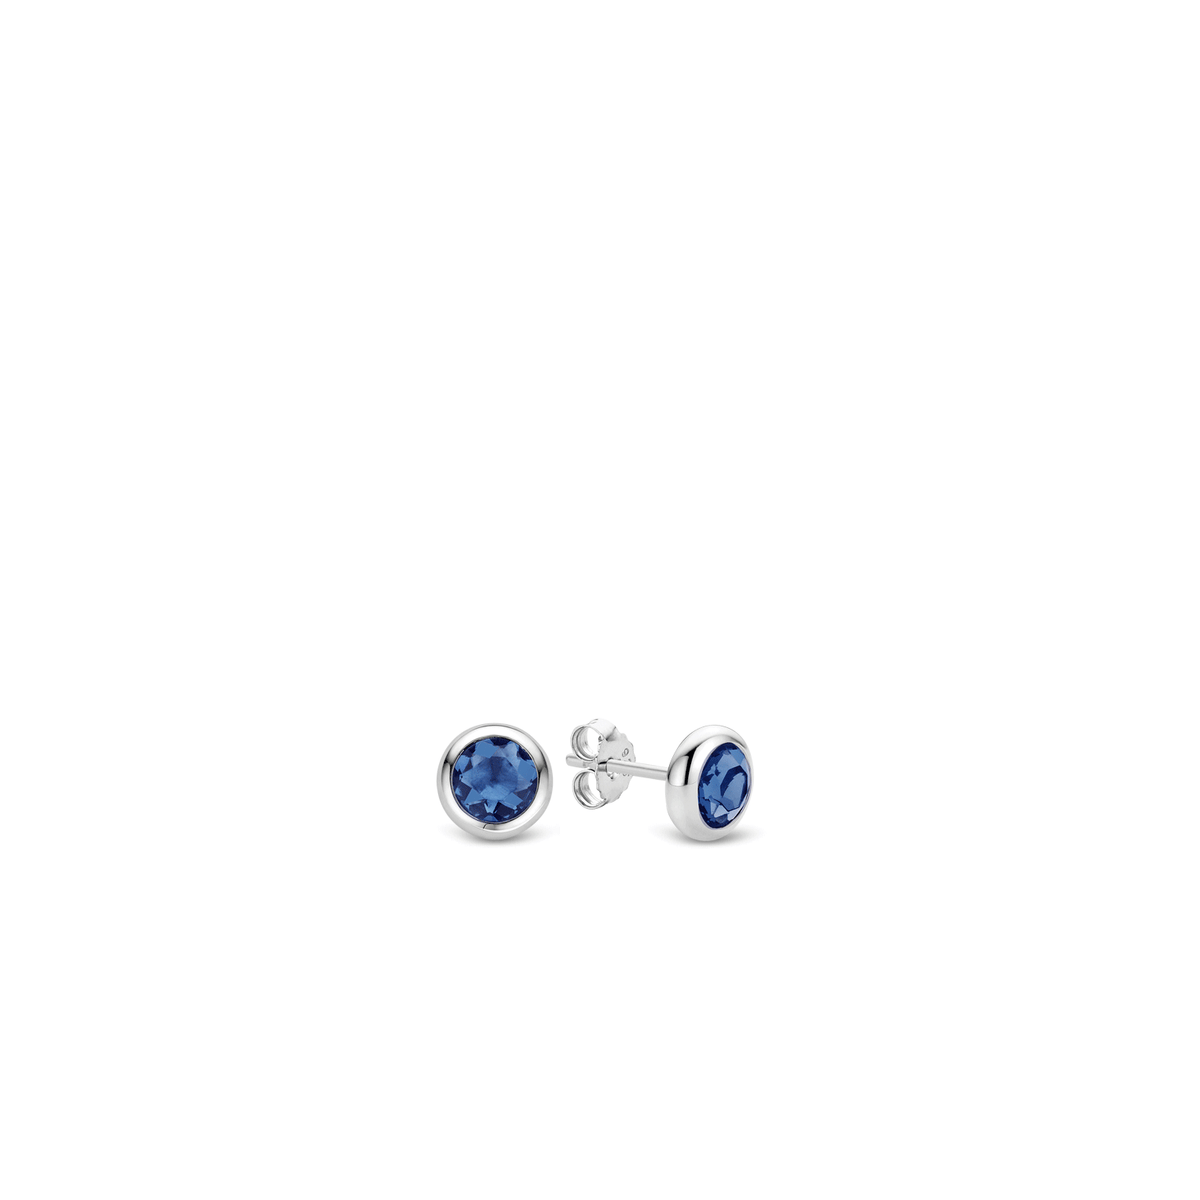 TI SENTO - Milano Earrings 7748DB